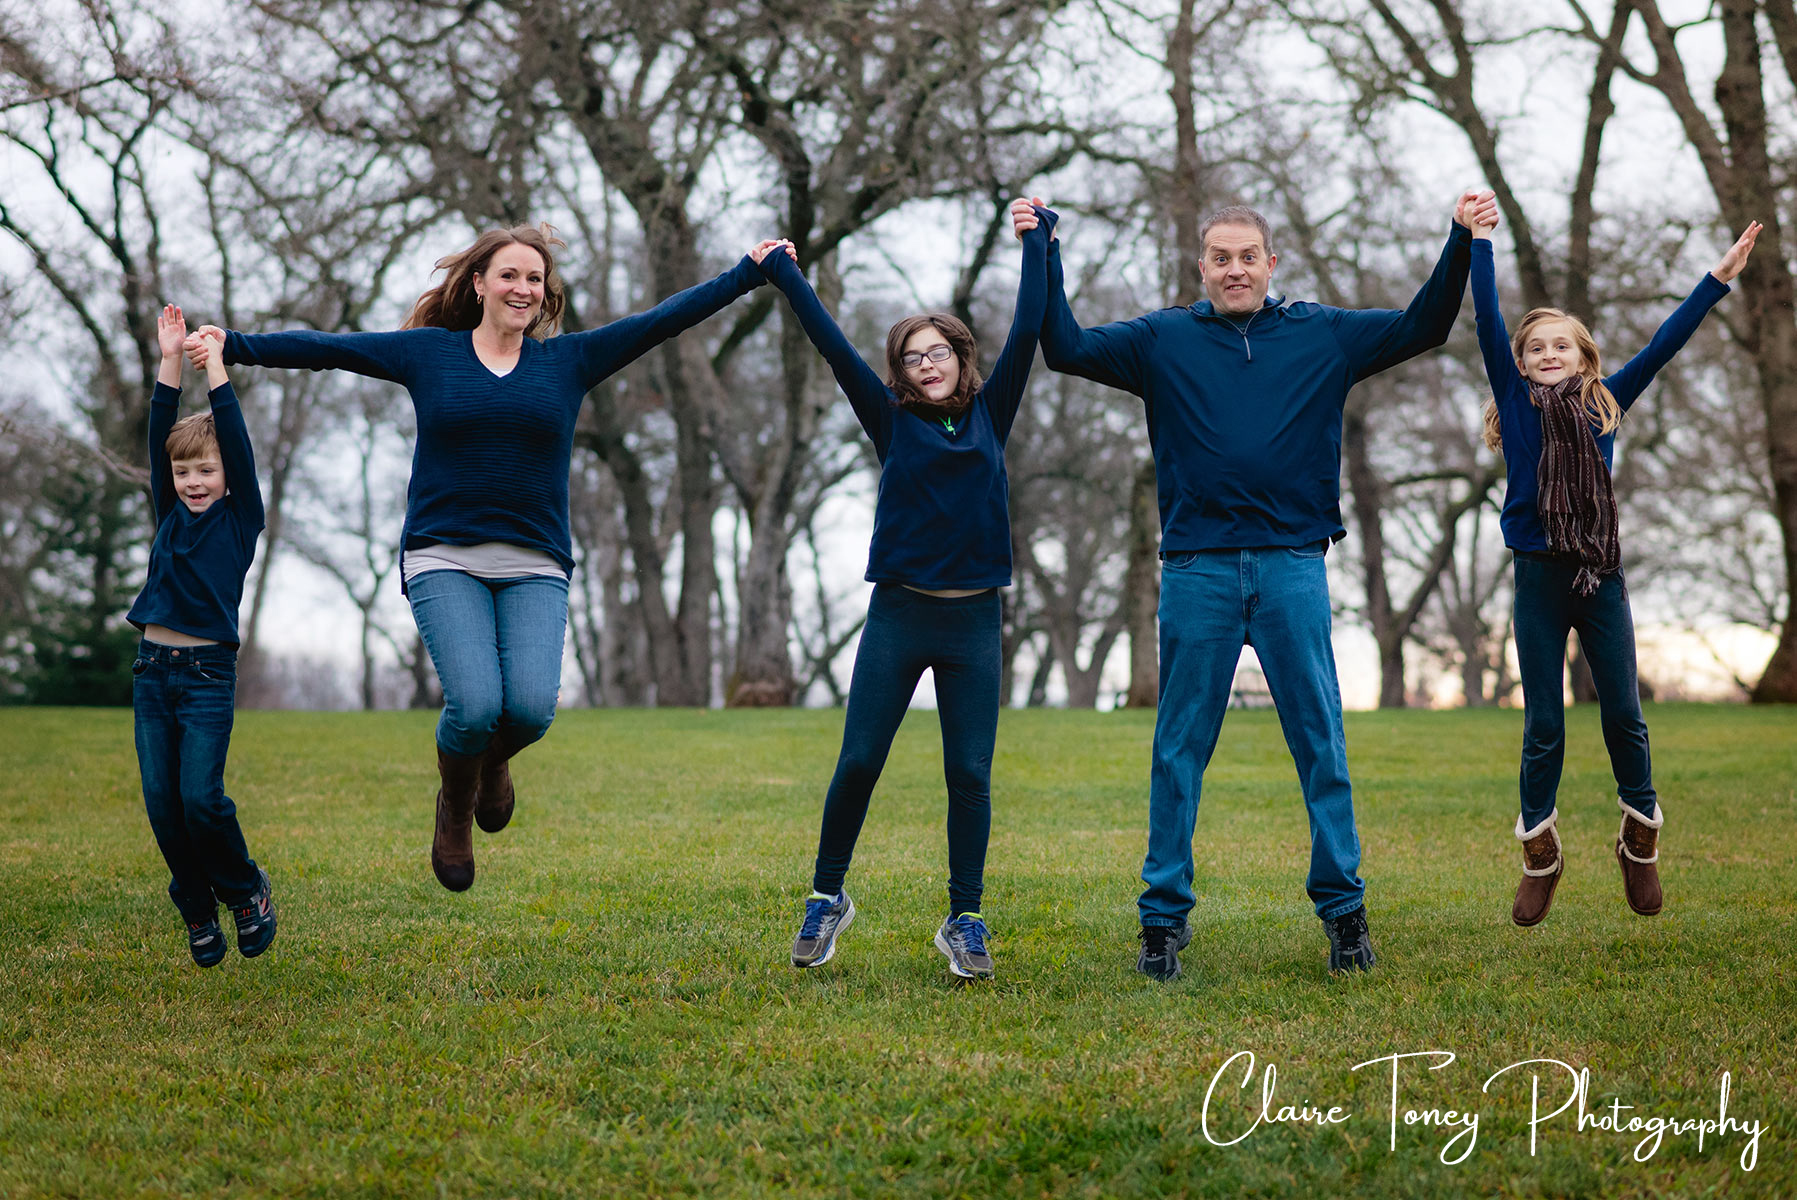 Family of 5 jumping